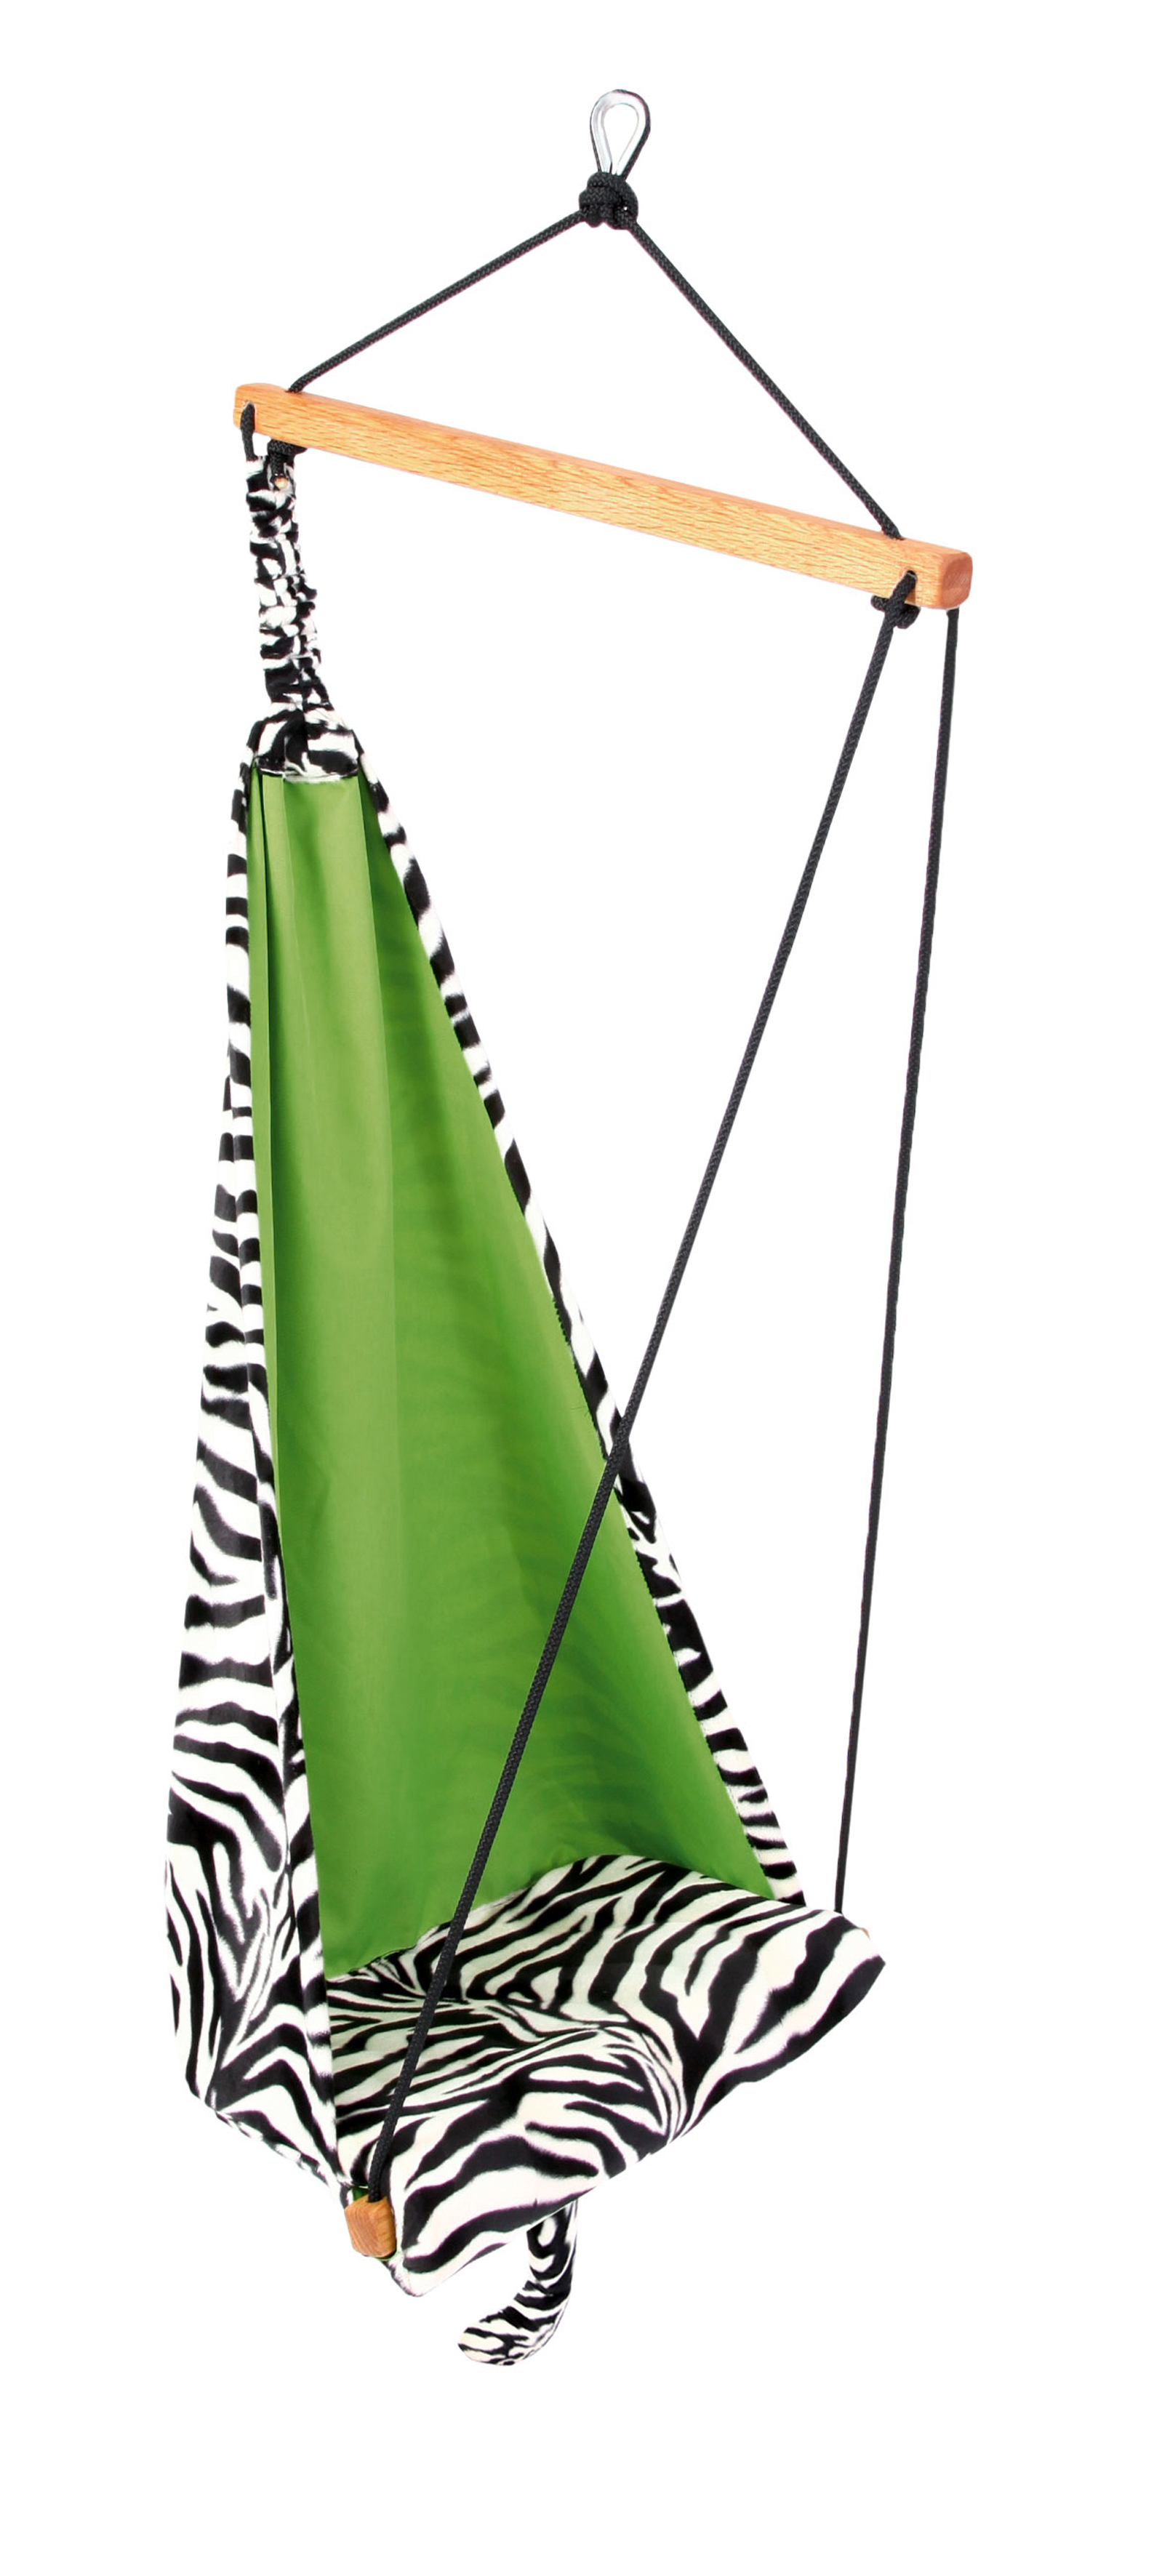 'Hang Mini' Zebra Kinderhangstoel - Groen - Amazonas